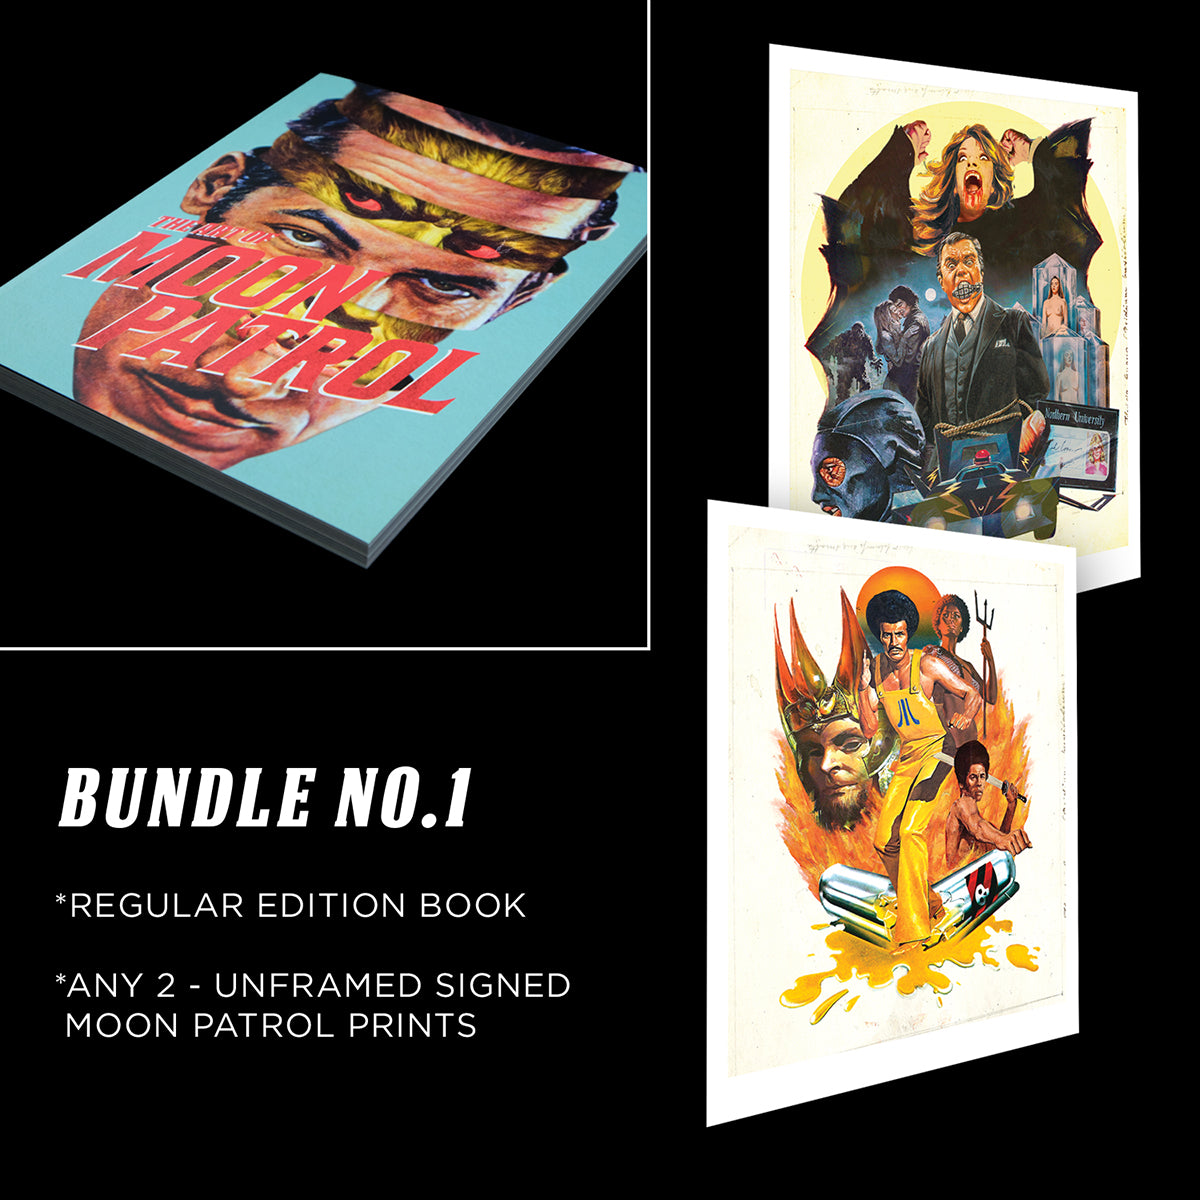 Bundle no.1